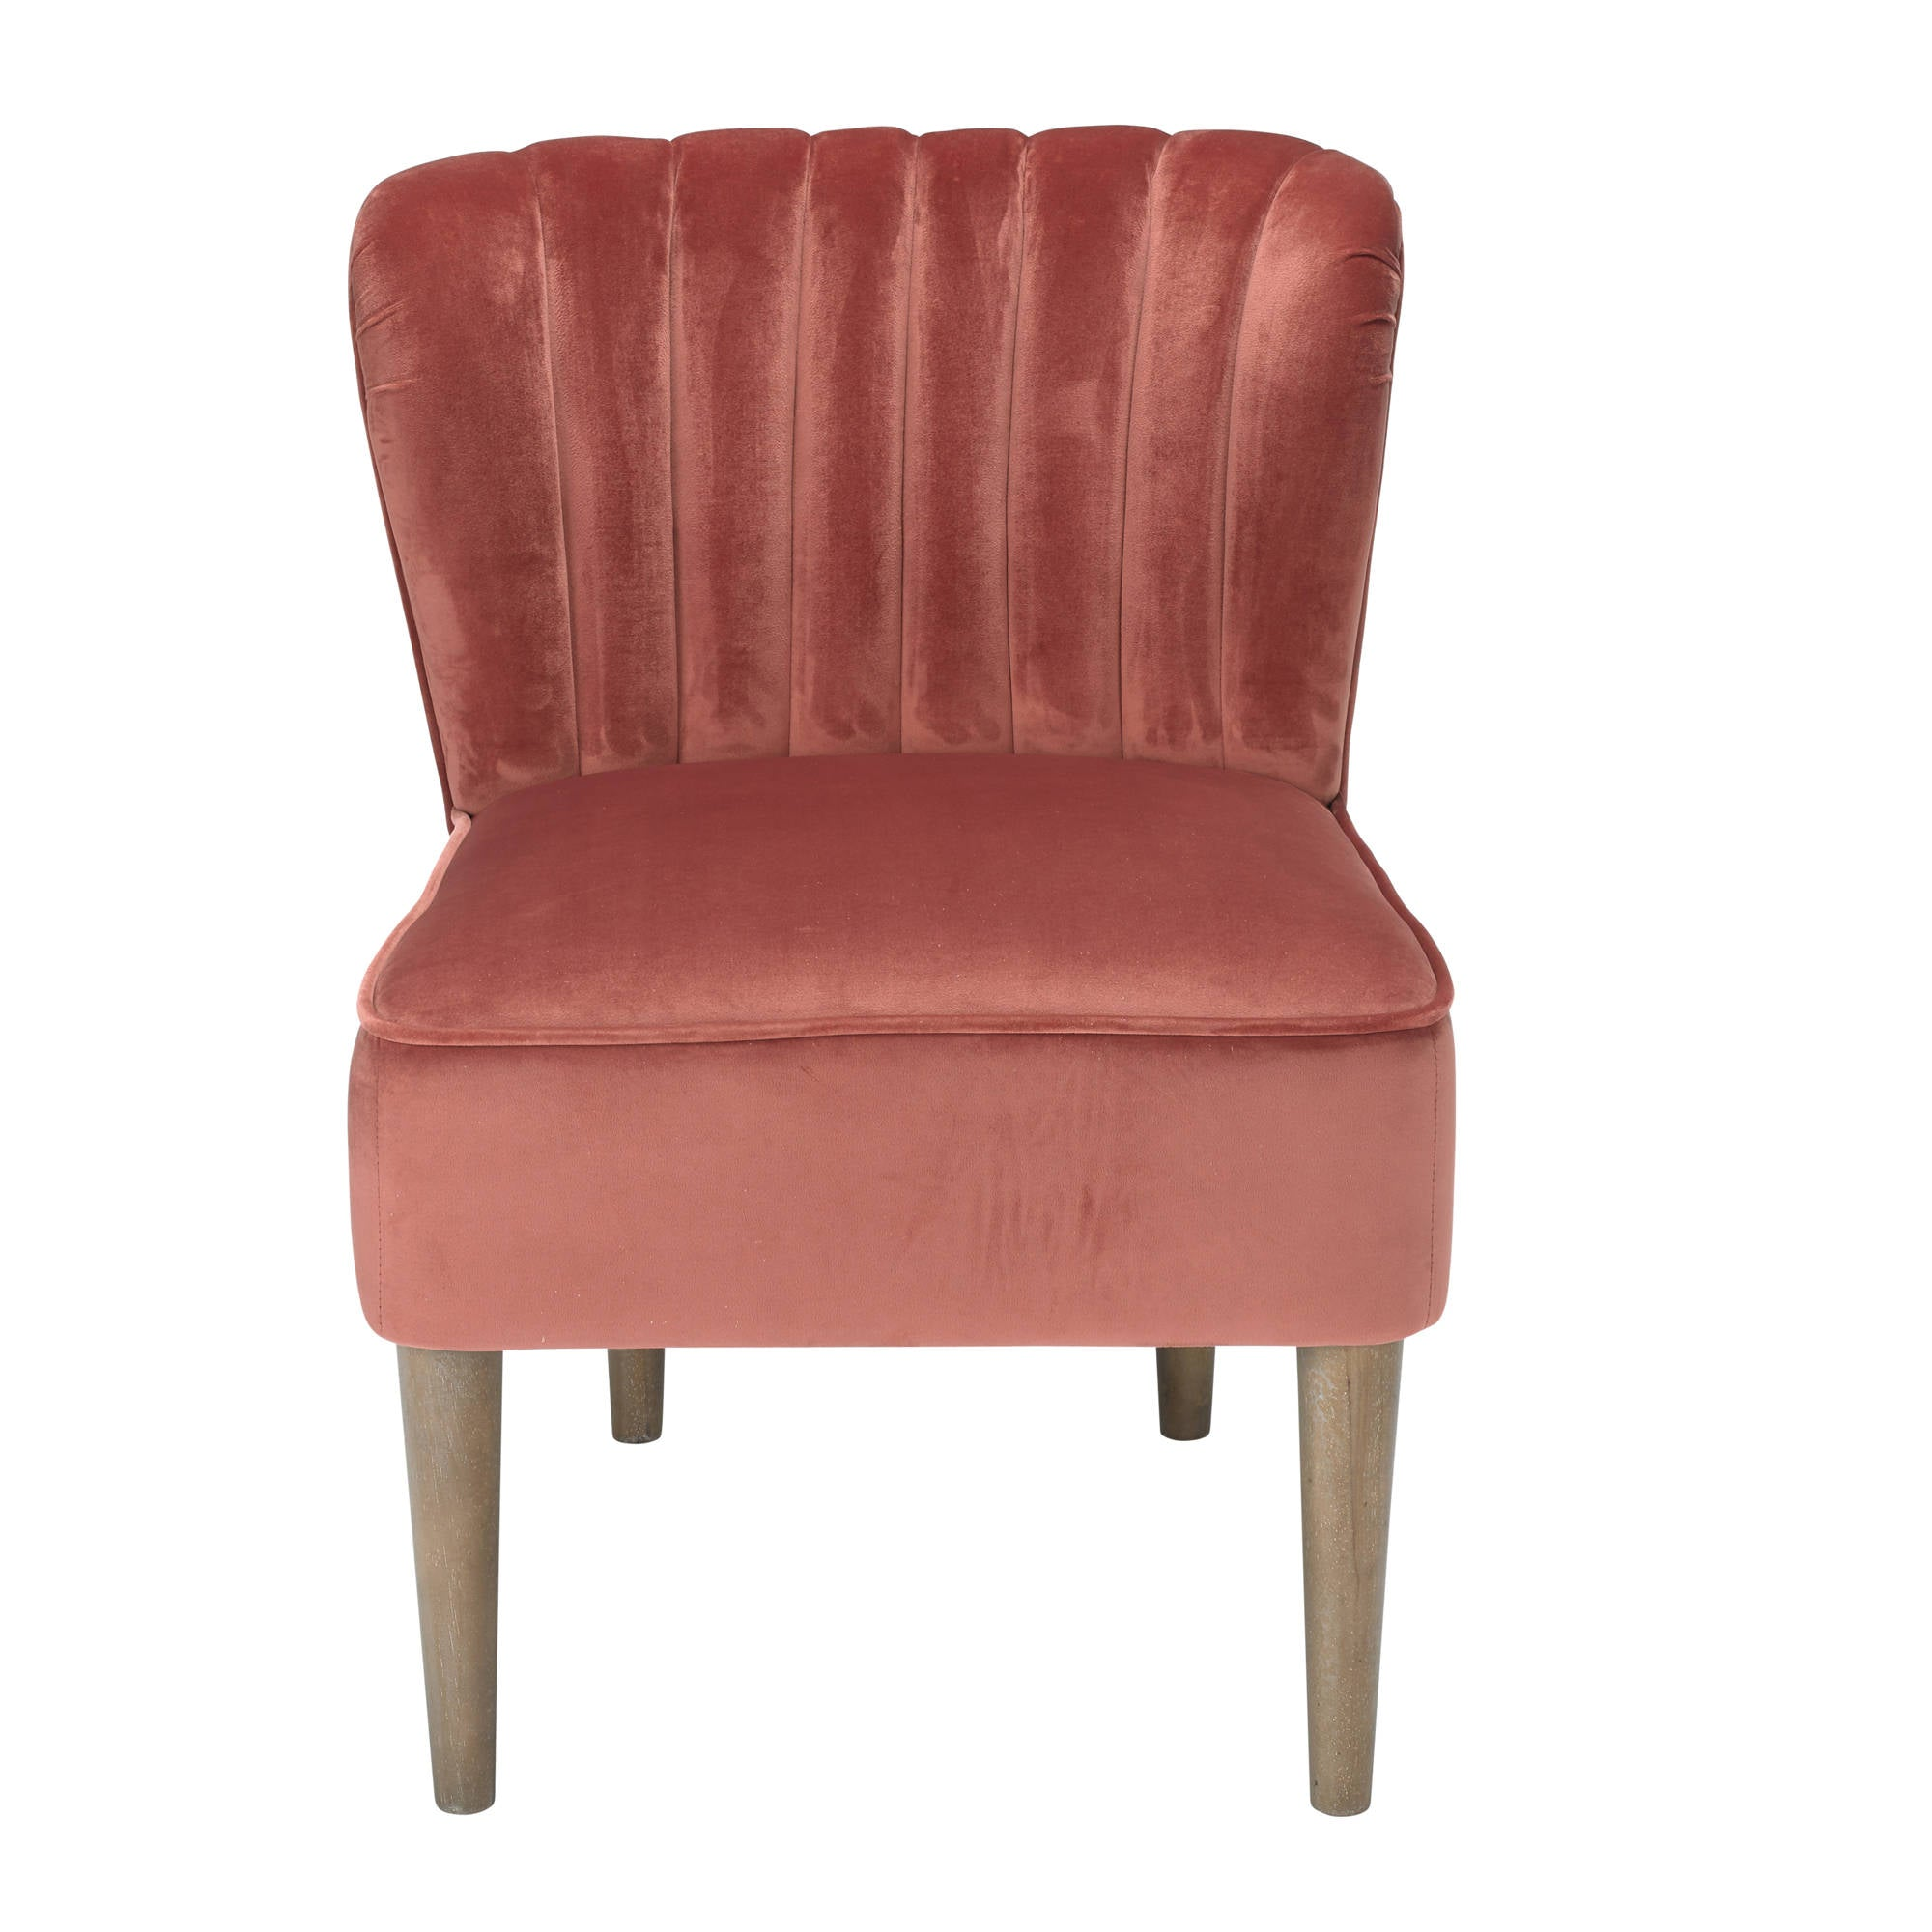 Belita Chair in Vintage Pink - Ezzo